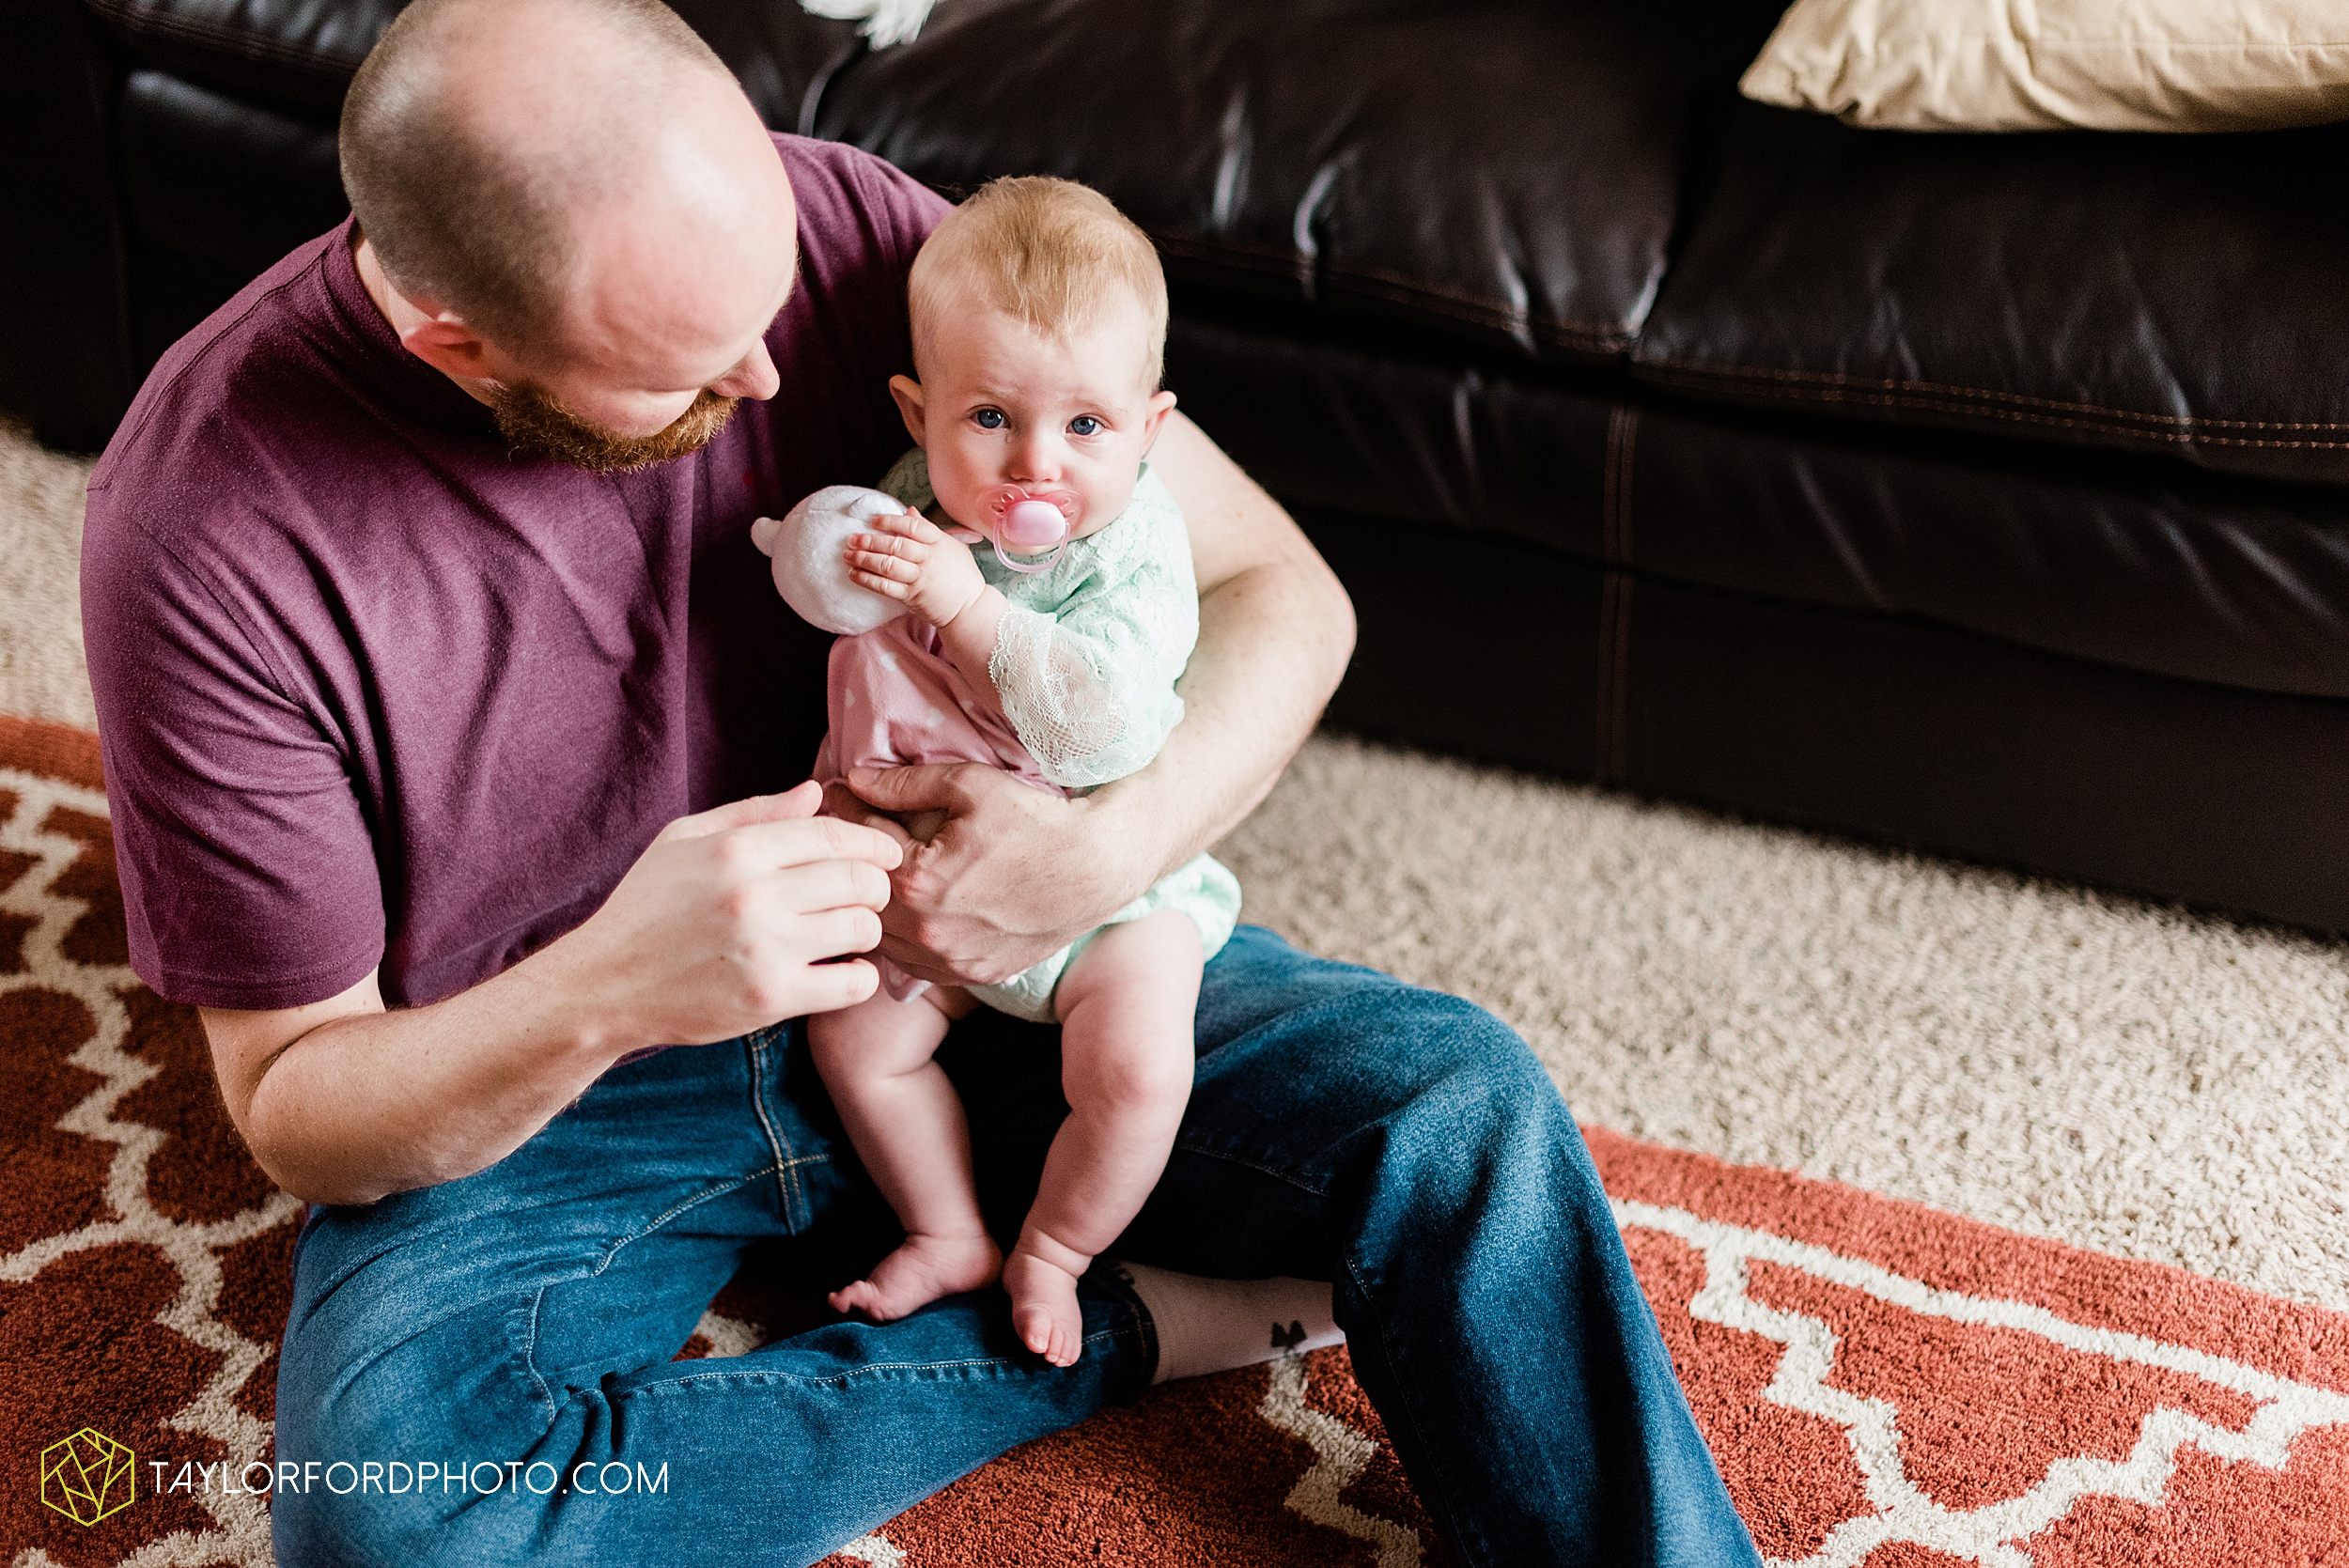 wasserman-family-at-home-huntertown-child-fort-wayne-indiana-newborn-photographer-photography-taylor-ford-hirschy-photographer_2498.jpg